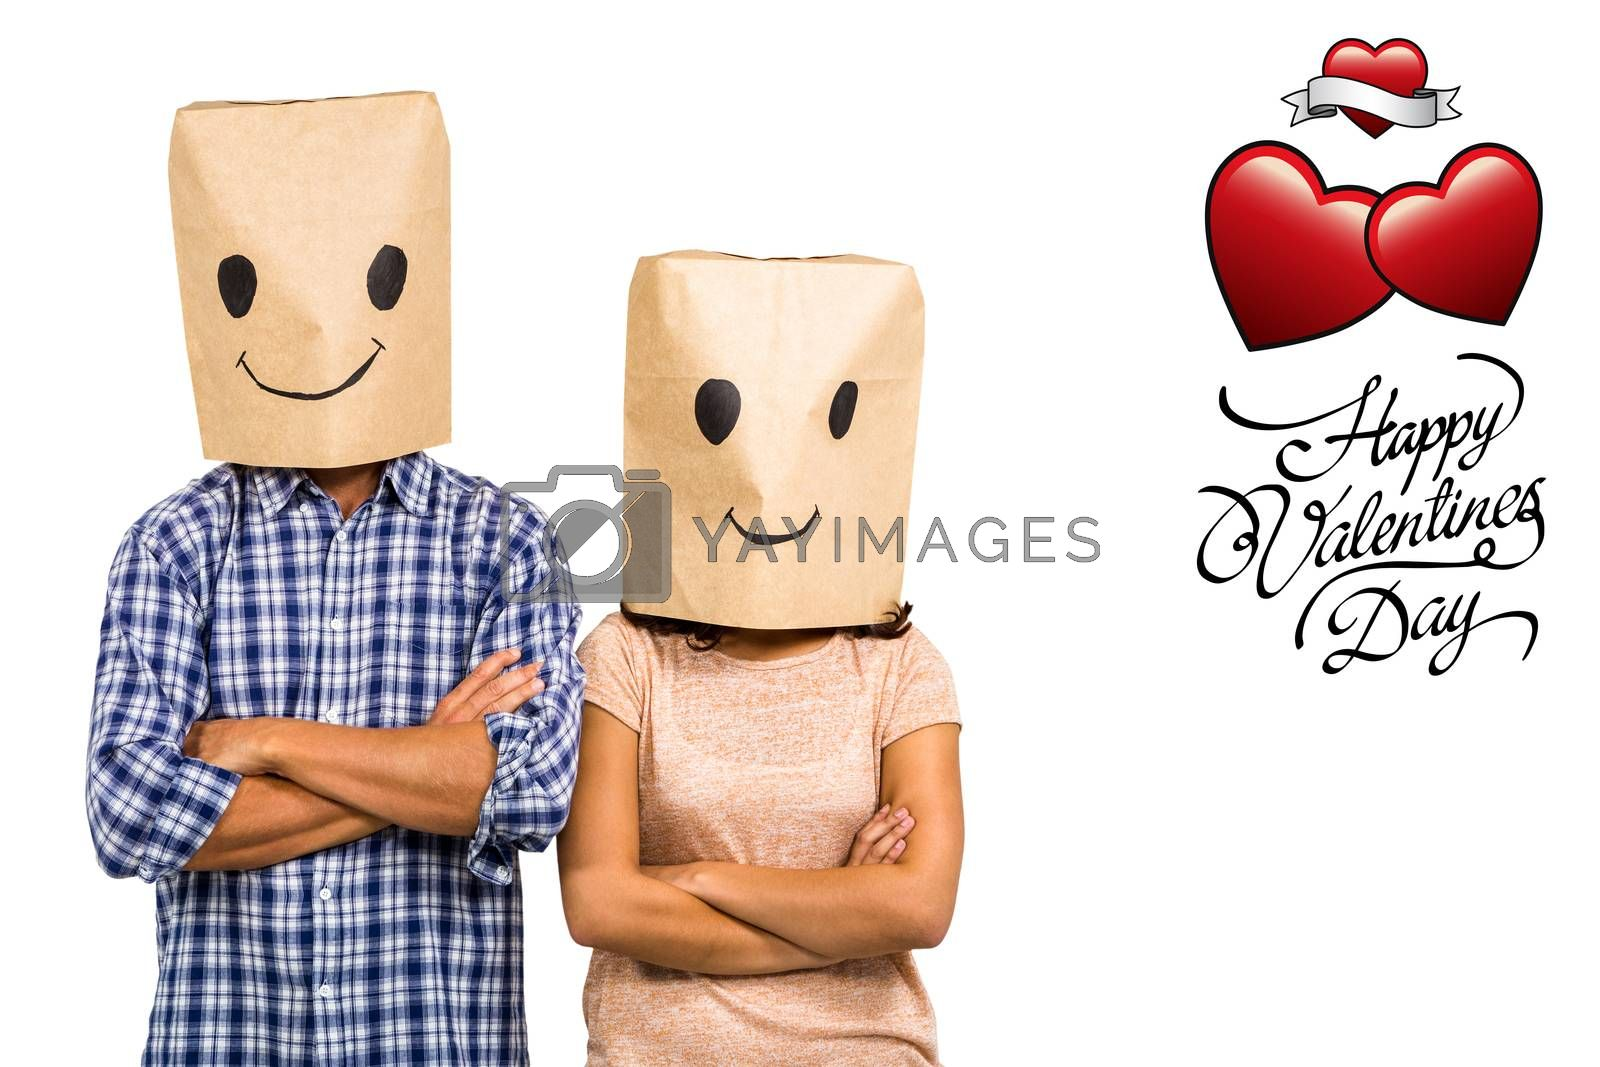 Couple with arms crossed wearing smiley paper bags against valentines day greeting